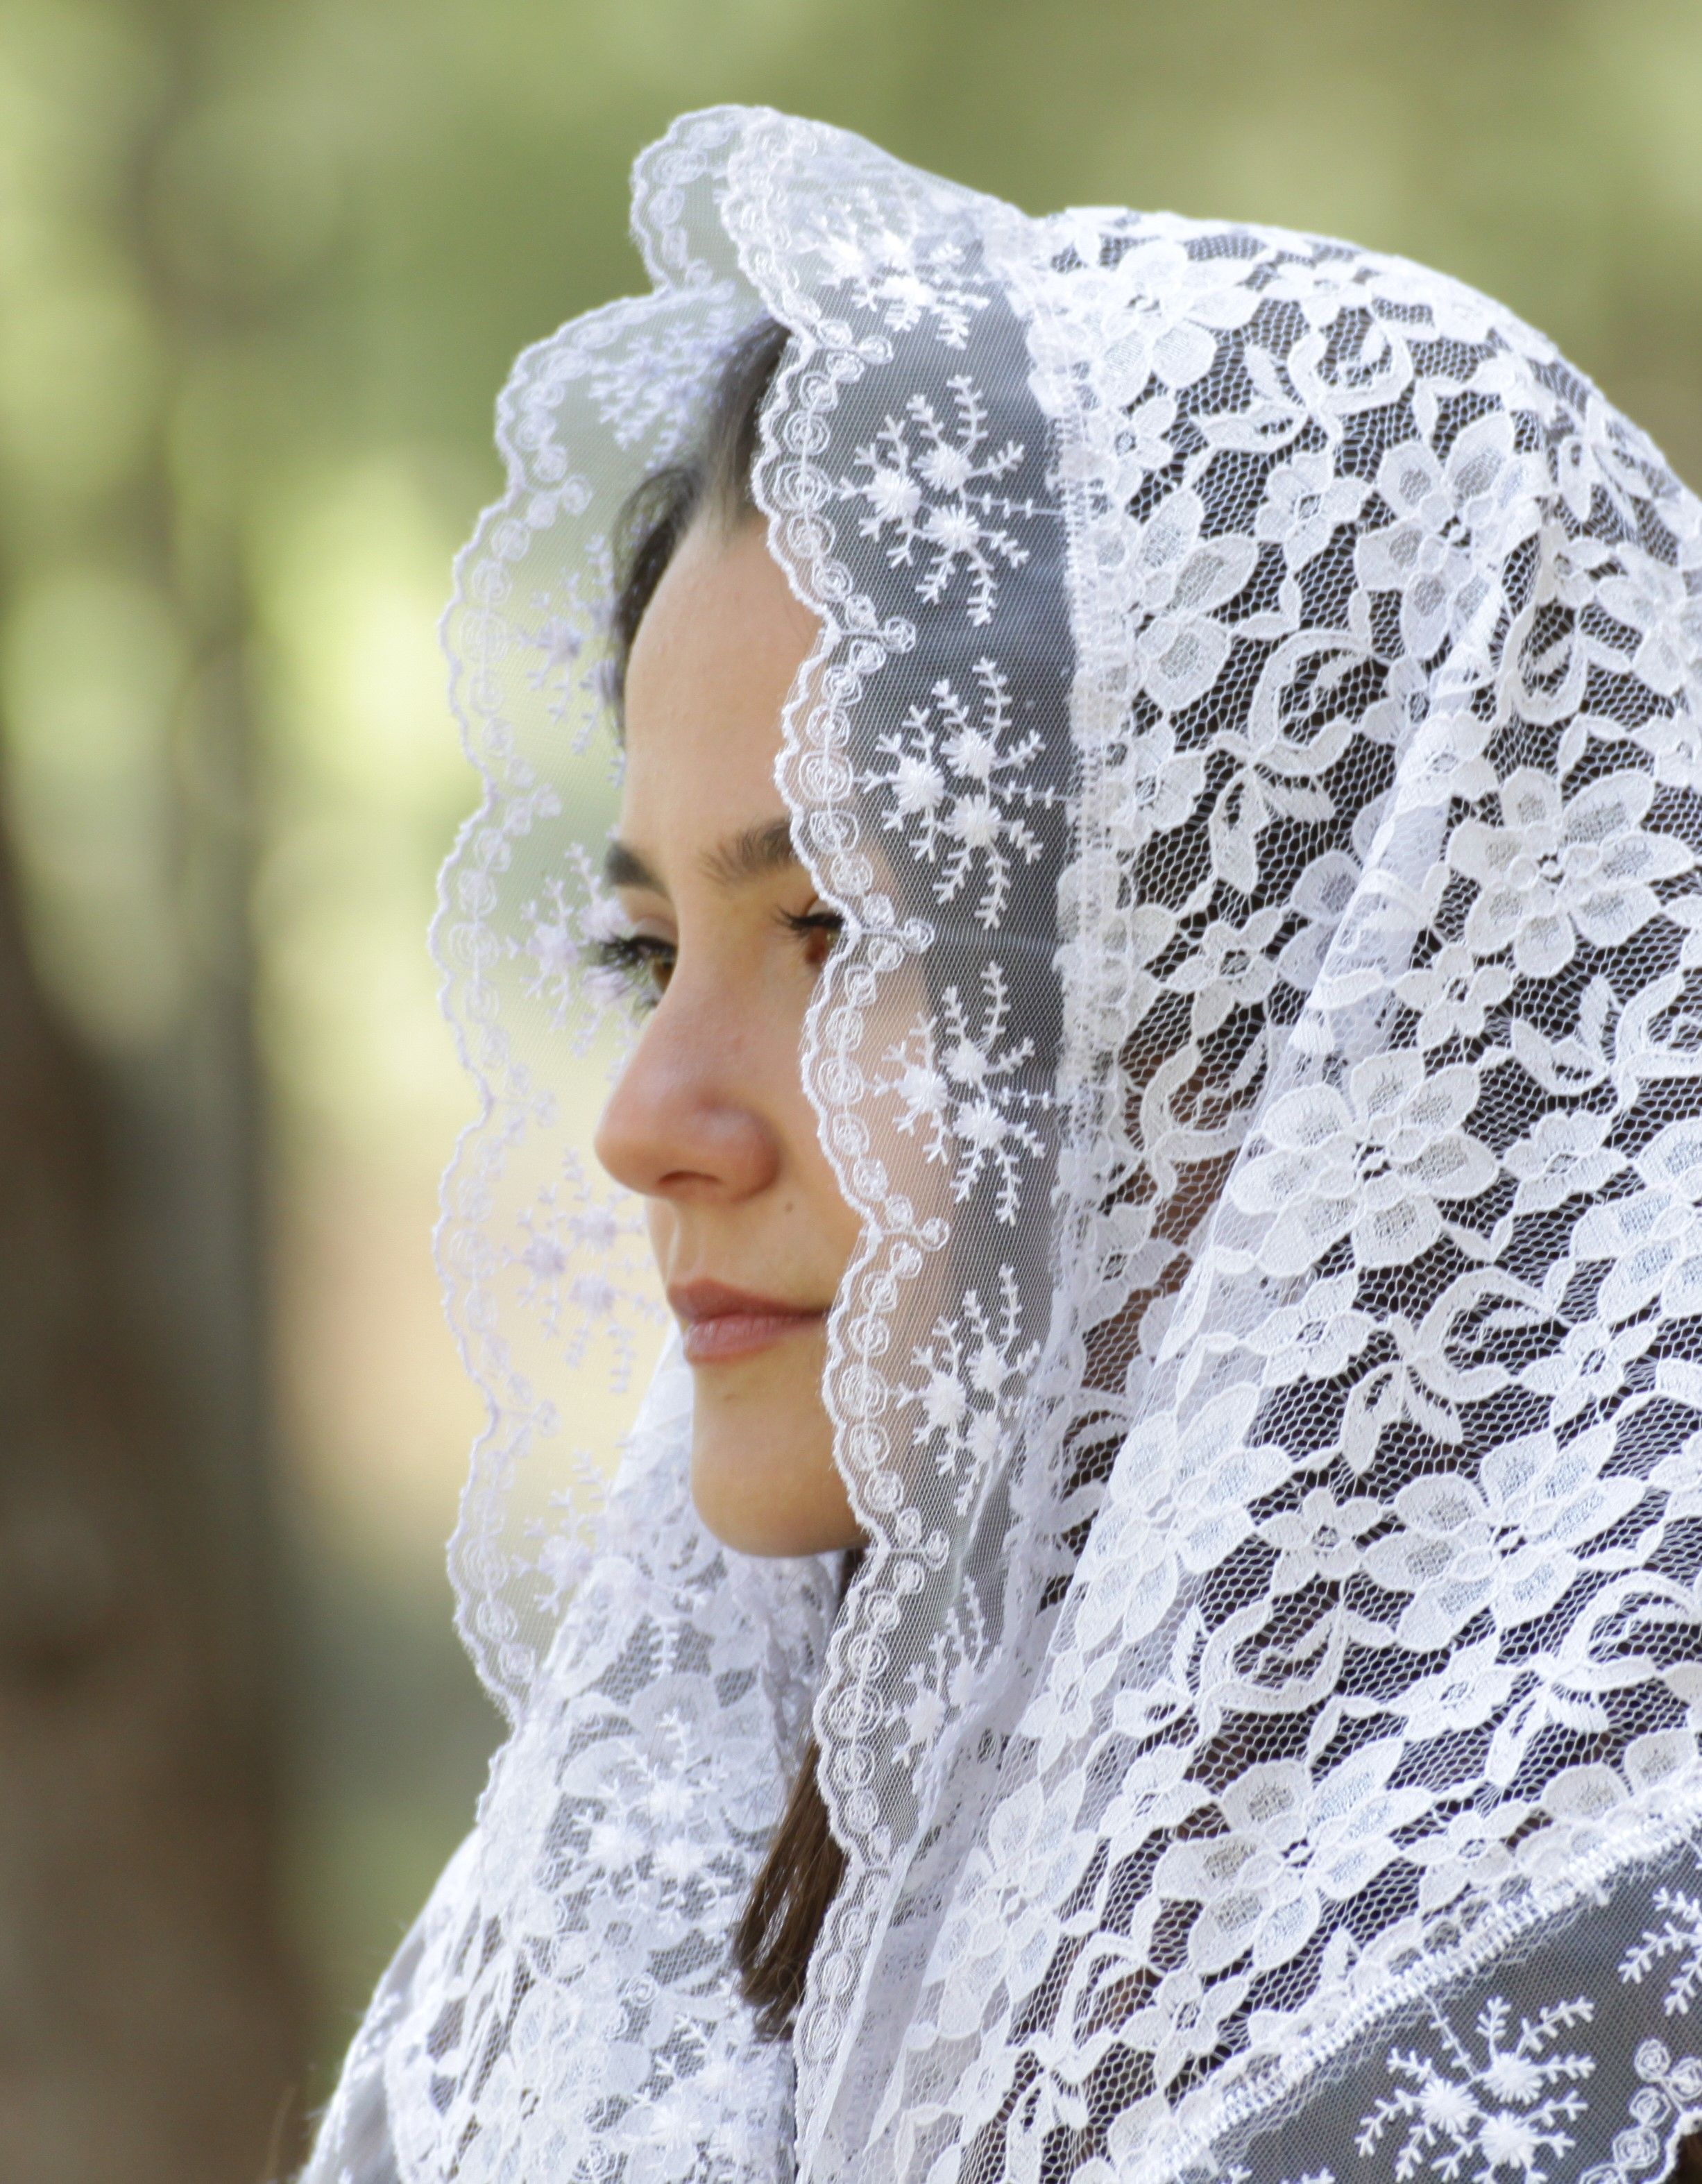 White Latin Mass Veil Lace Triangle Prayer Veil For